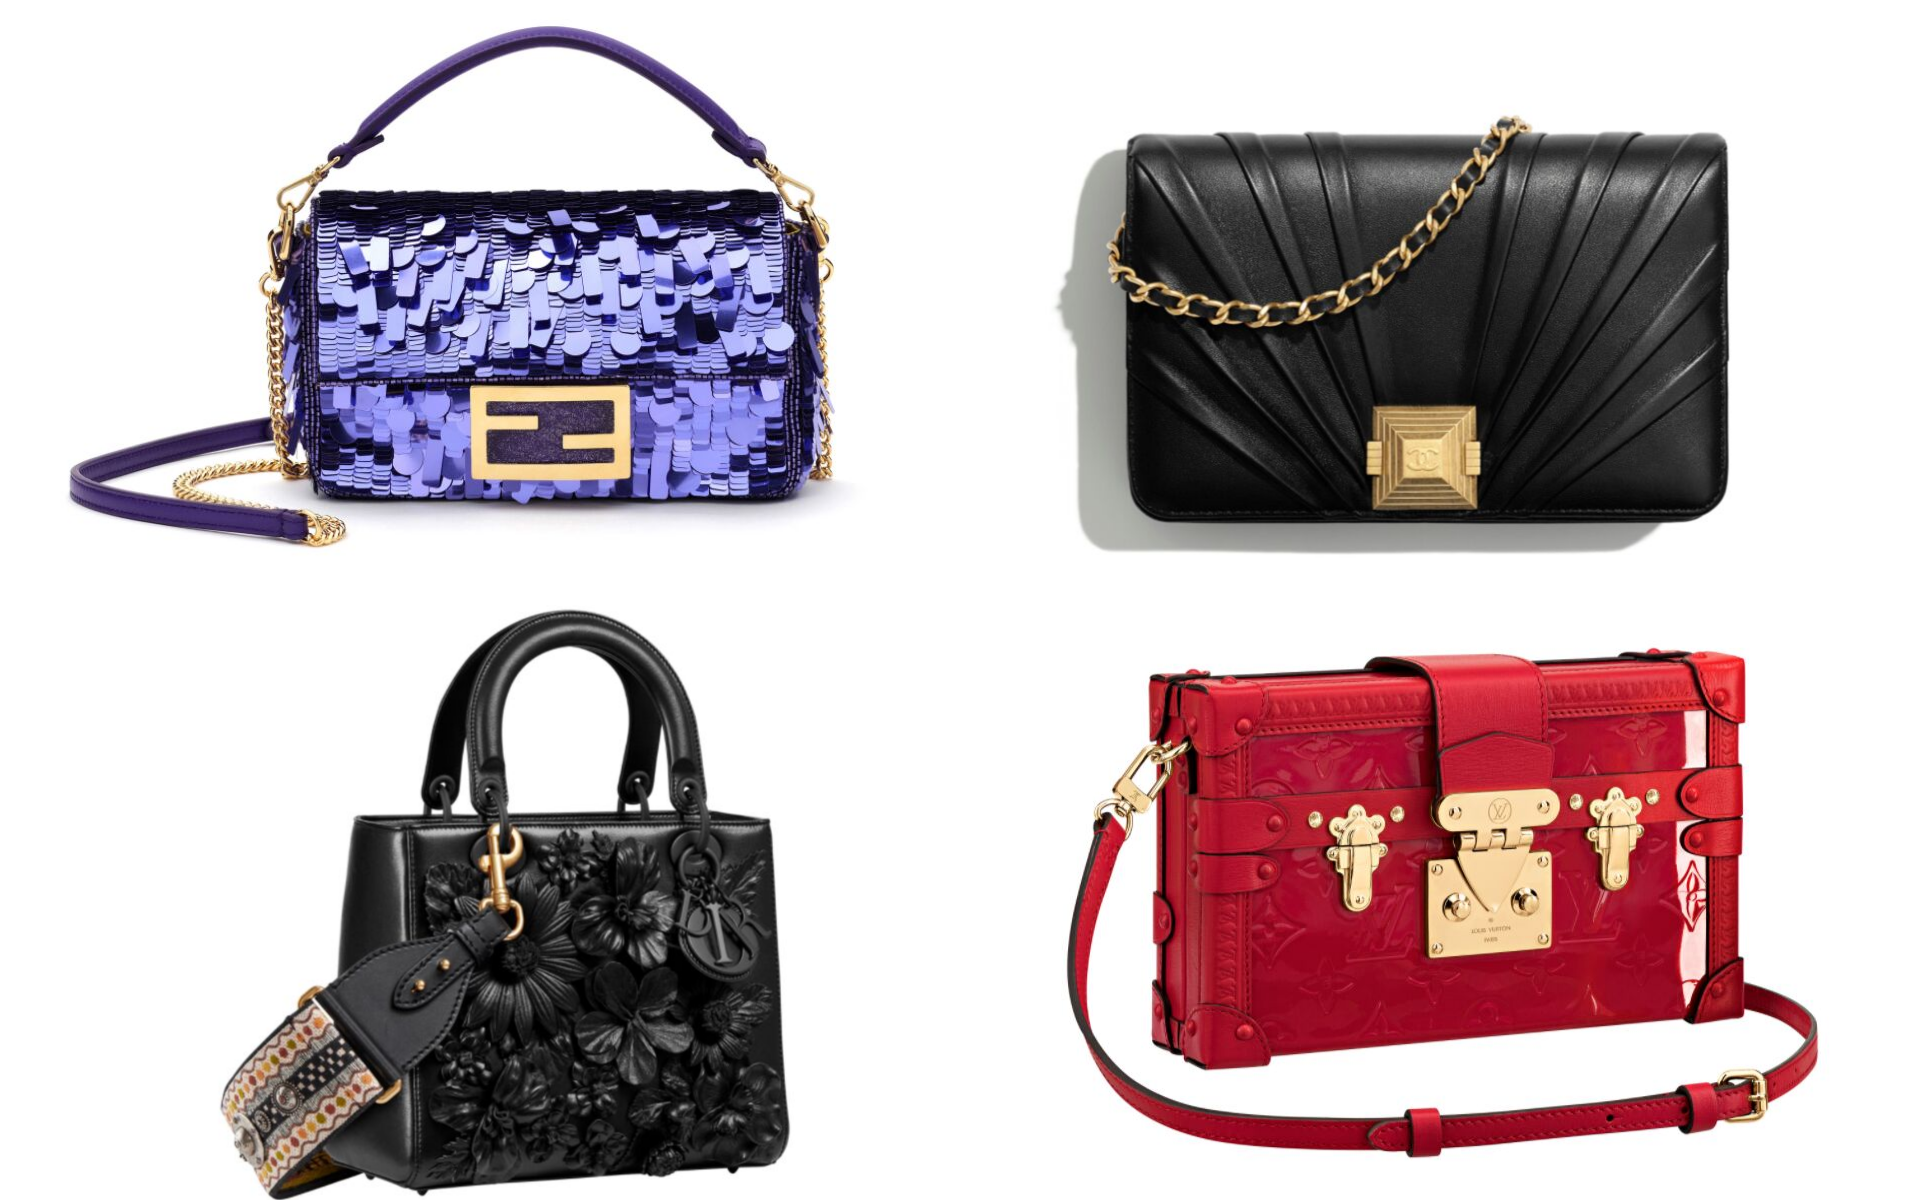 Photo: Courtesy of Fendi, Chanel,Dior and Louis Vuitton